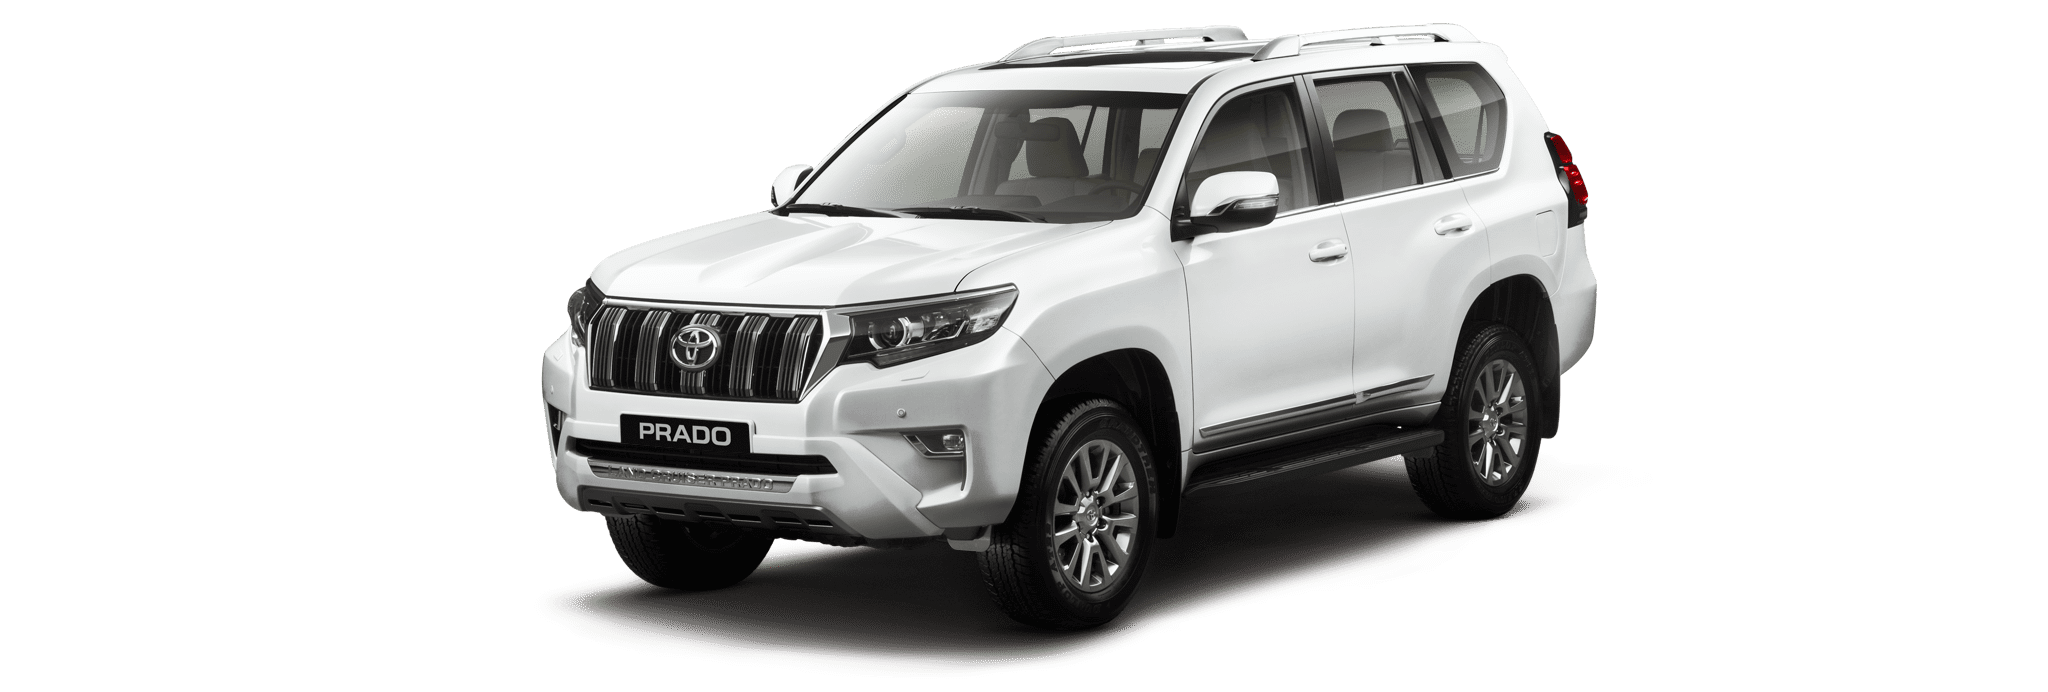 86 Best Review Prado Toyota 2019 Ratings for Prado Toyota 2019